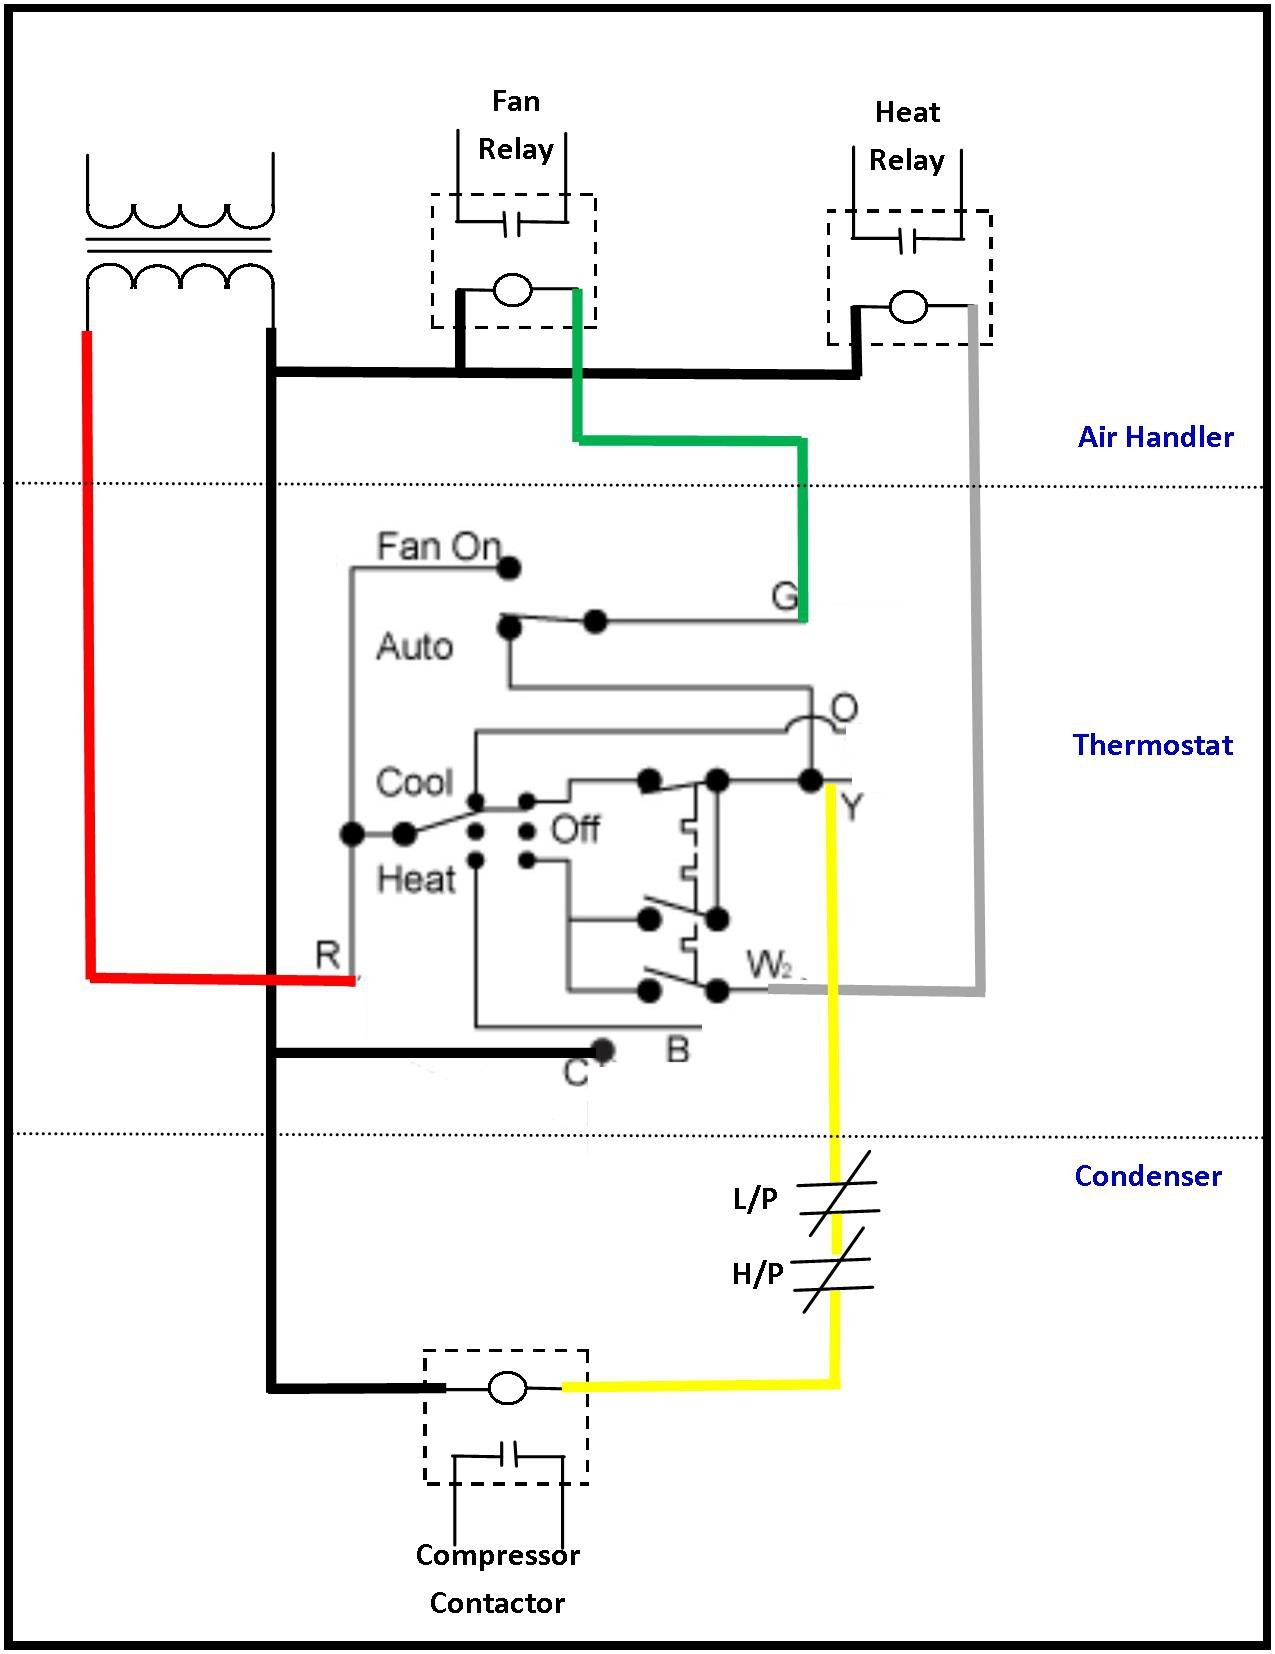 how to wire a transformer diagram high voltage mini step up autotransformer wiring diagram how to wire a transformer diagram acme transformer wiring diagrams inspirational unusual 24v of how to